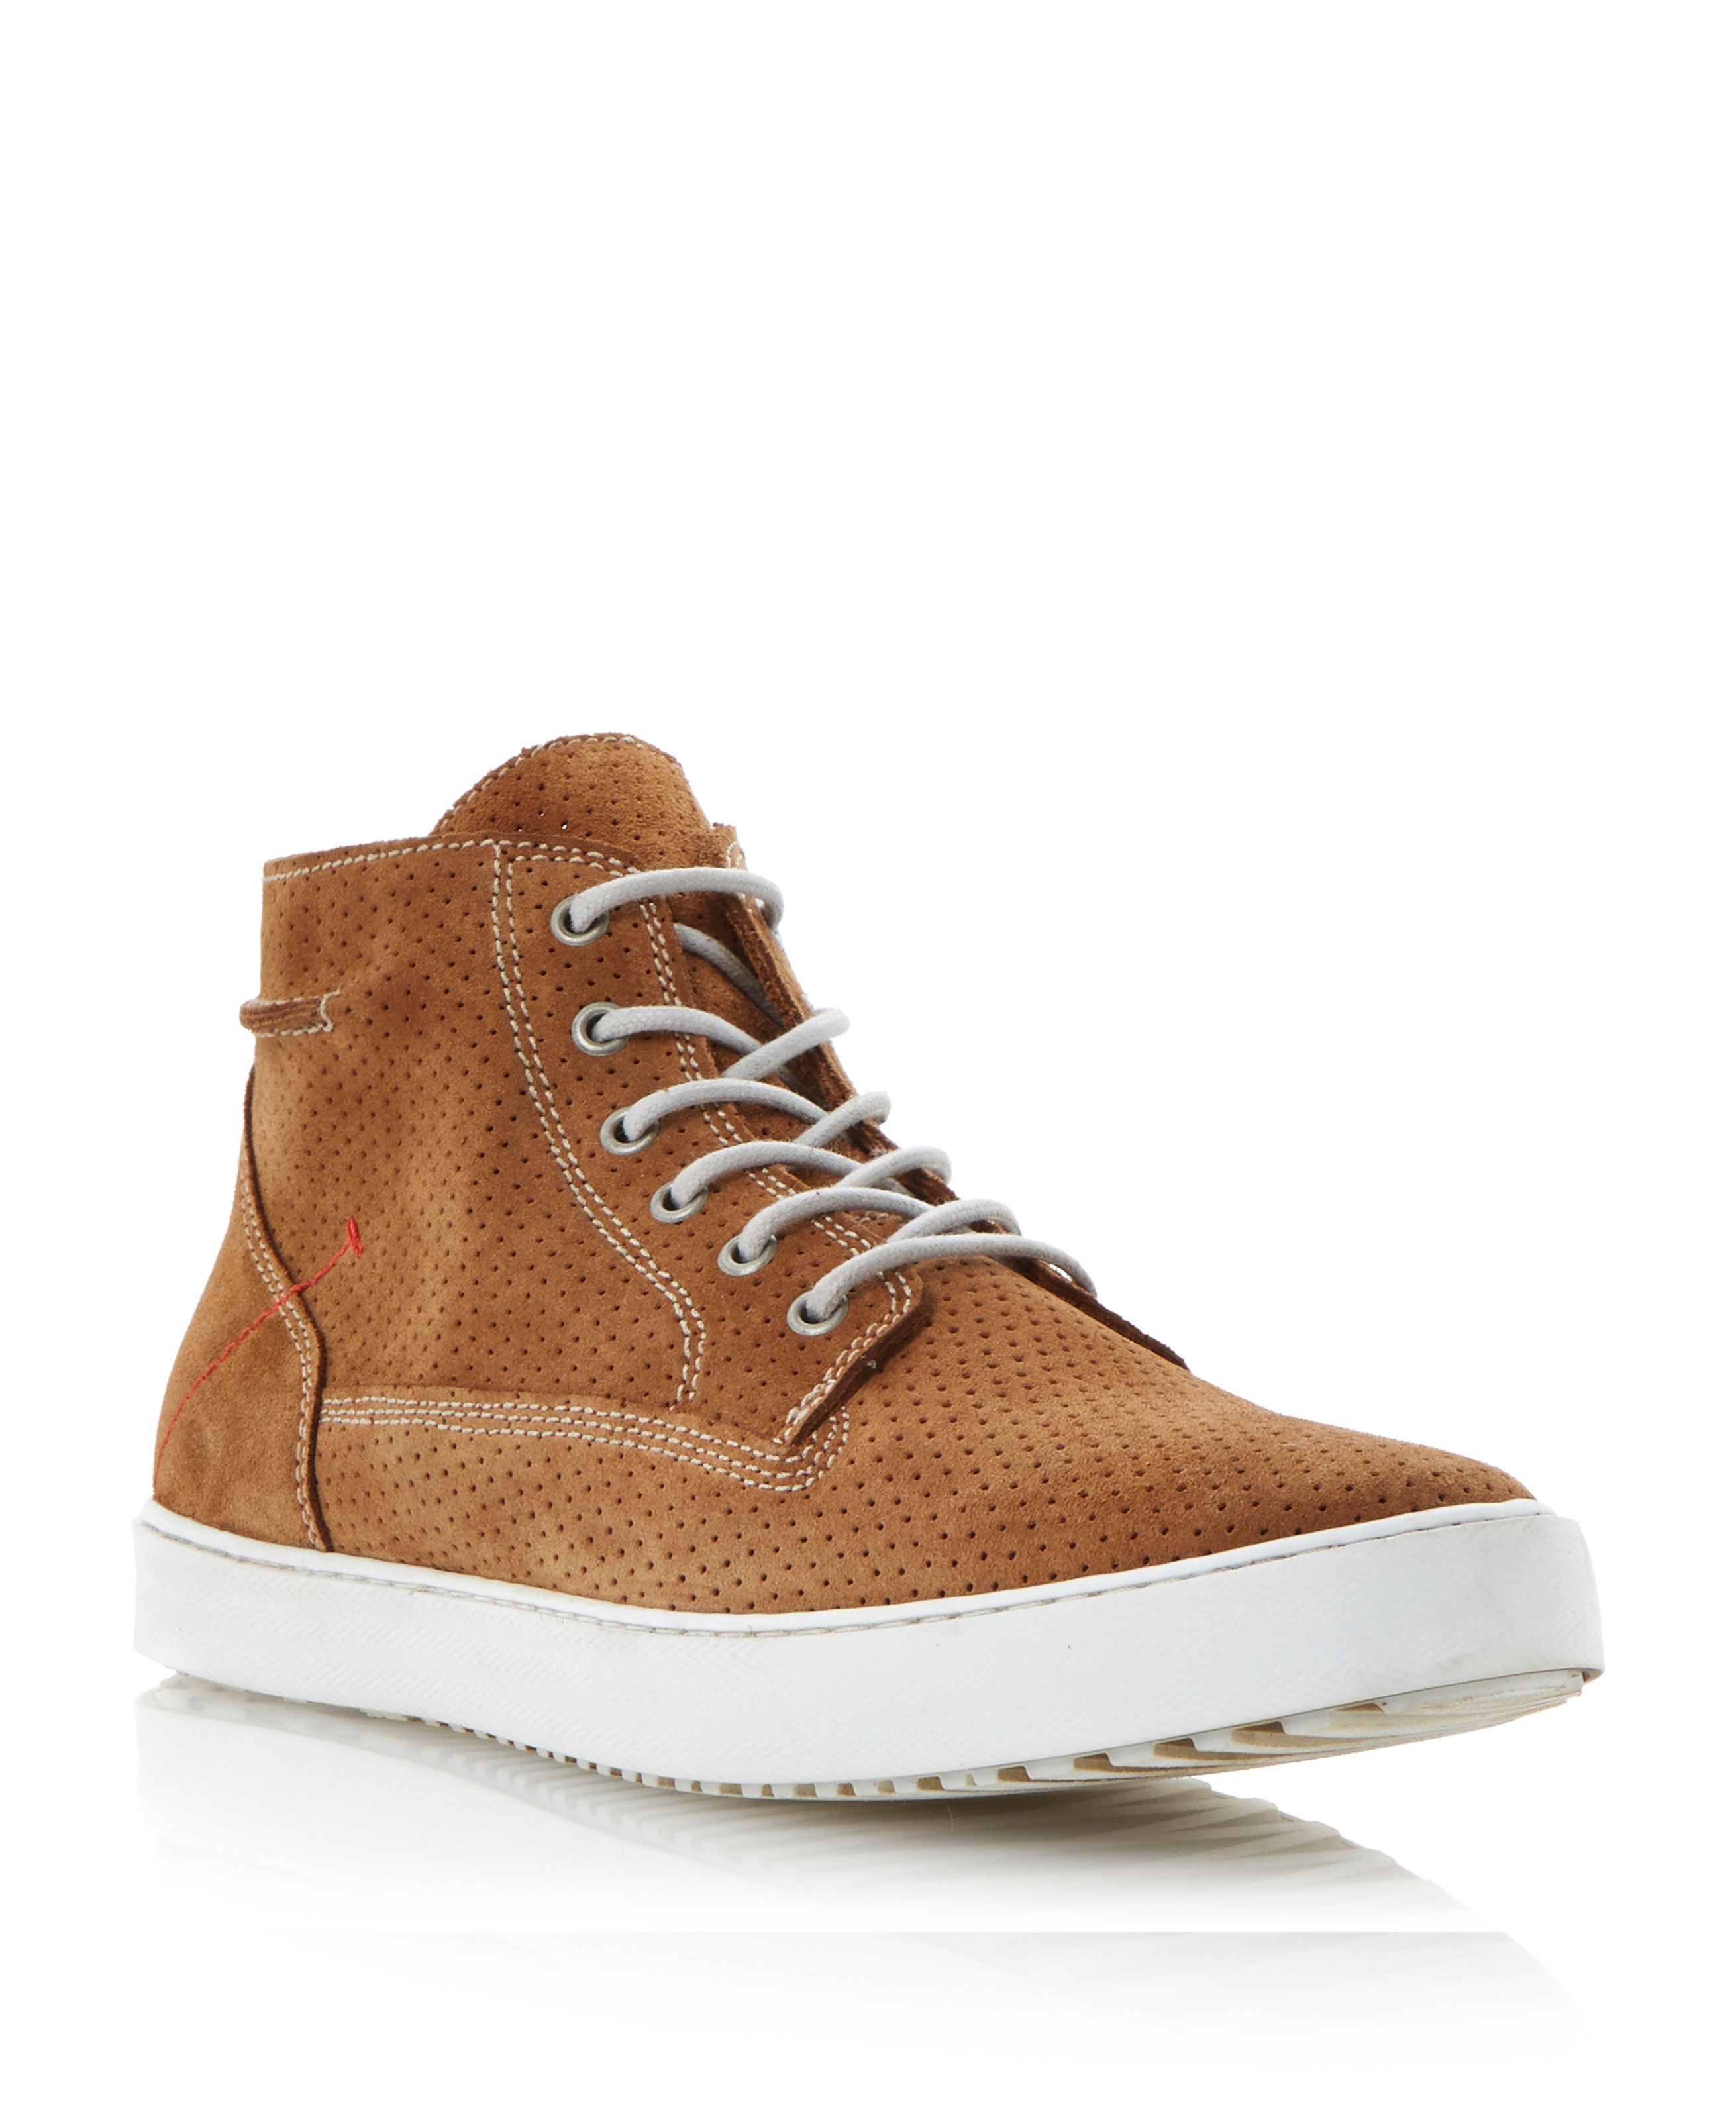 Sculpture lace up perforated suede high tops